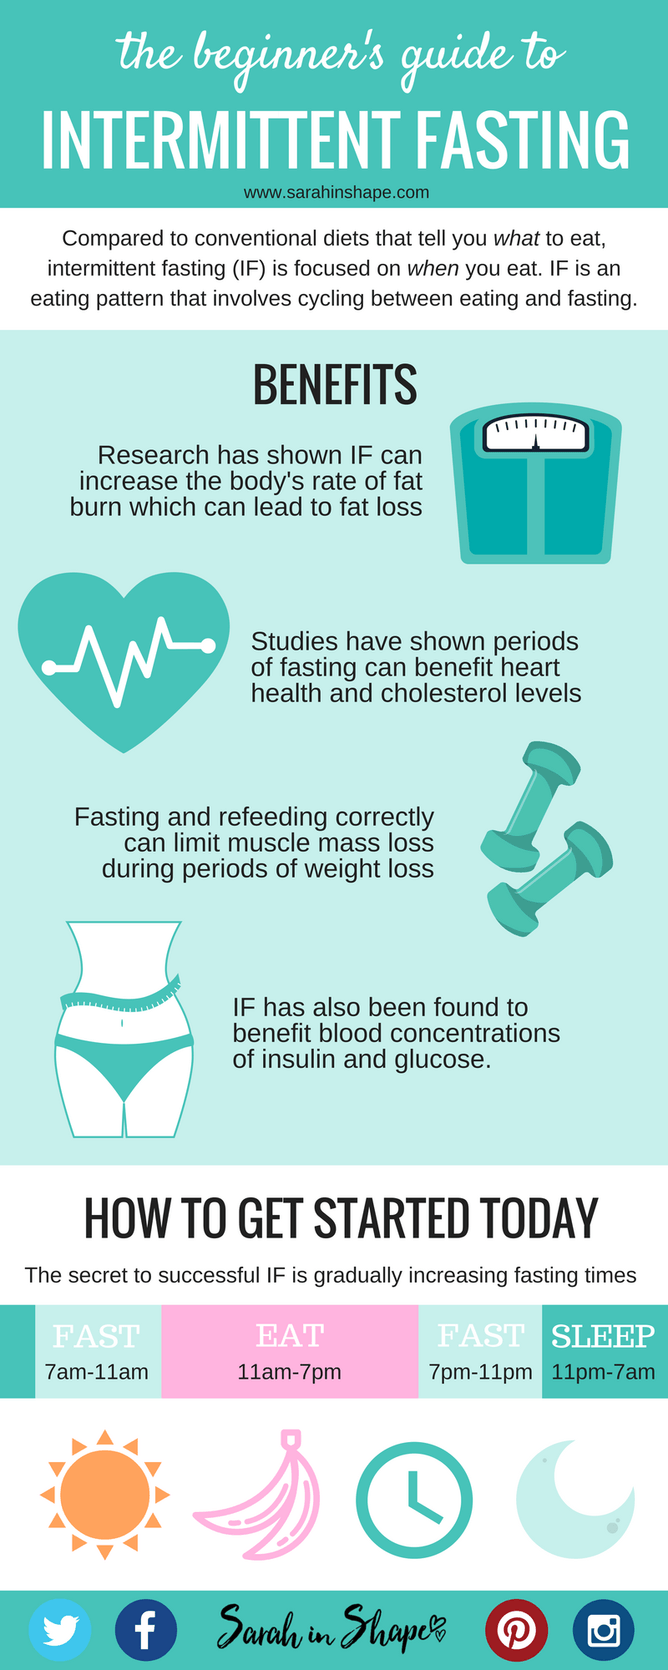 Beginners guide to Intermittent Fasting